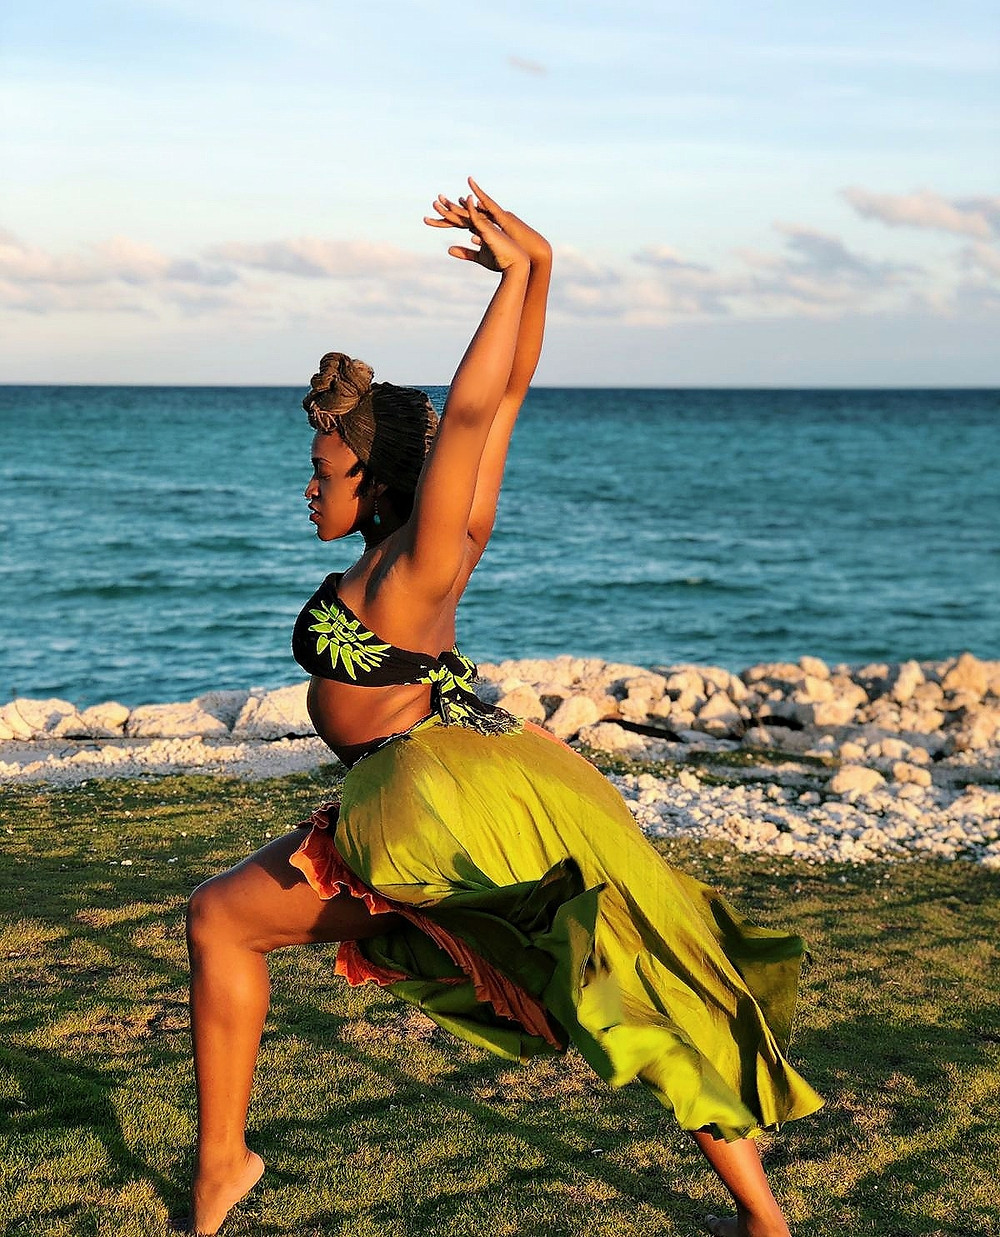 Bahamian woman in a dance pose, arms raised and hands flexed